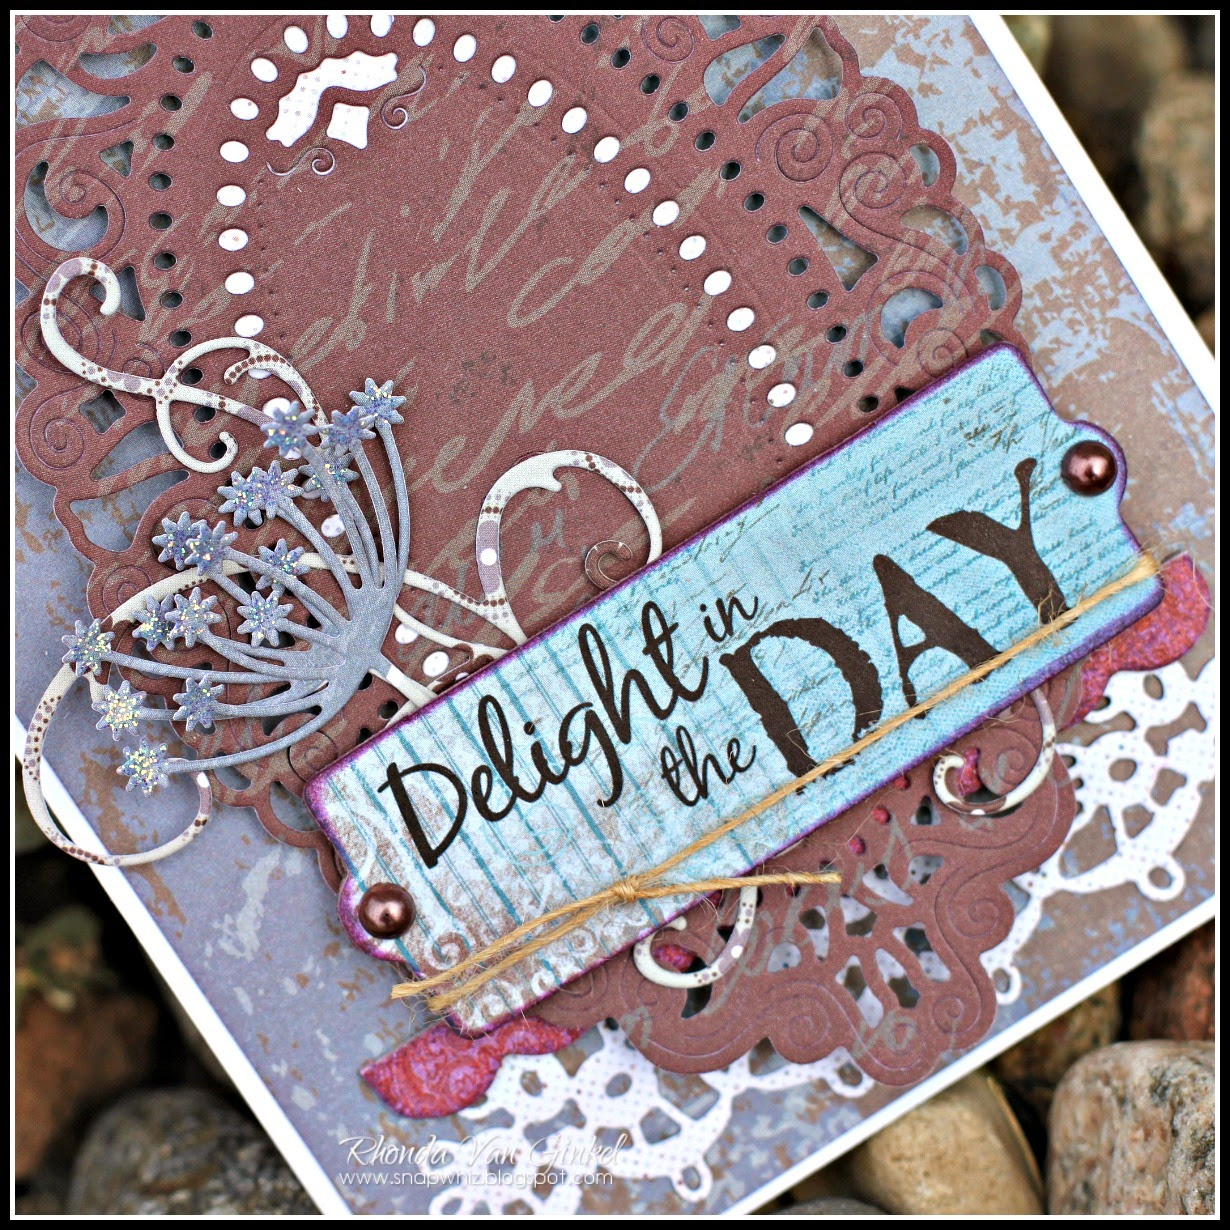 Delight in the Day, Card for Quick Quotes featuring Alton Collection and PowderPuff Chalk Inks by Rhonda Van Ginkel